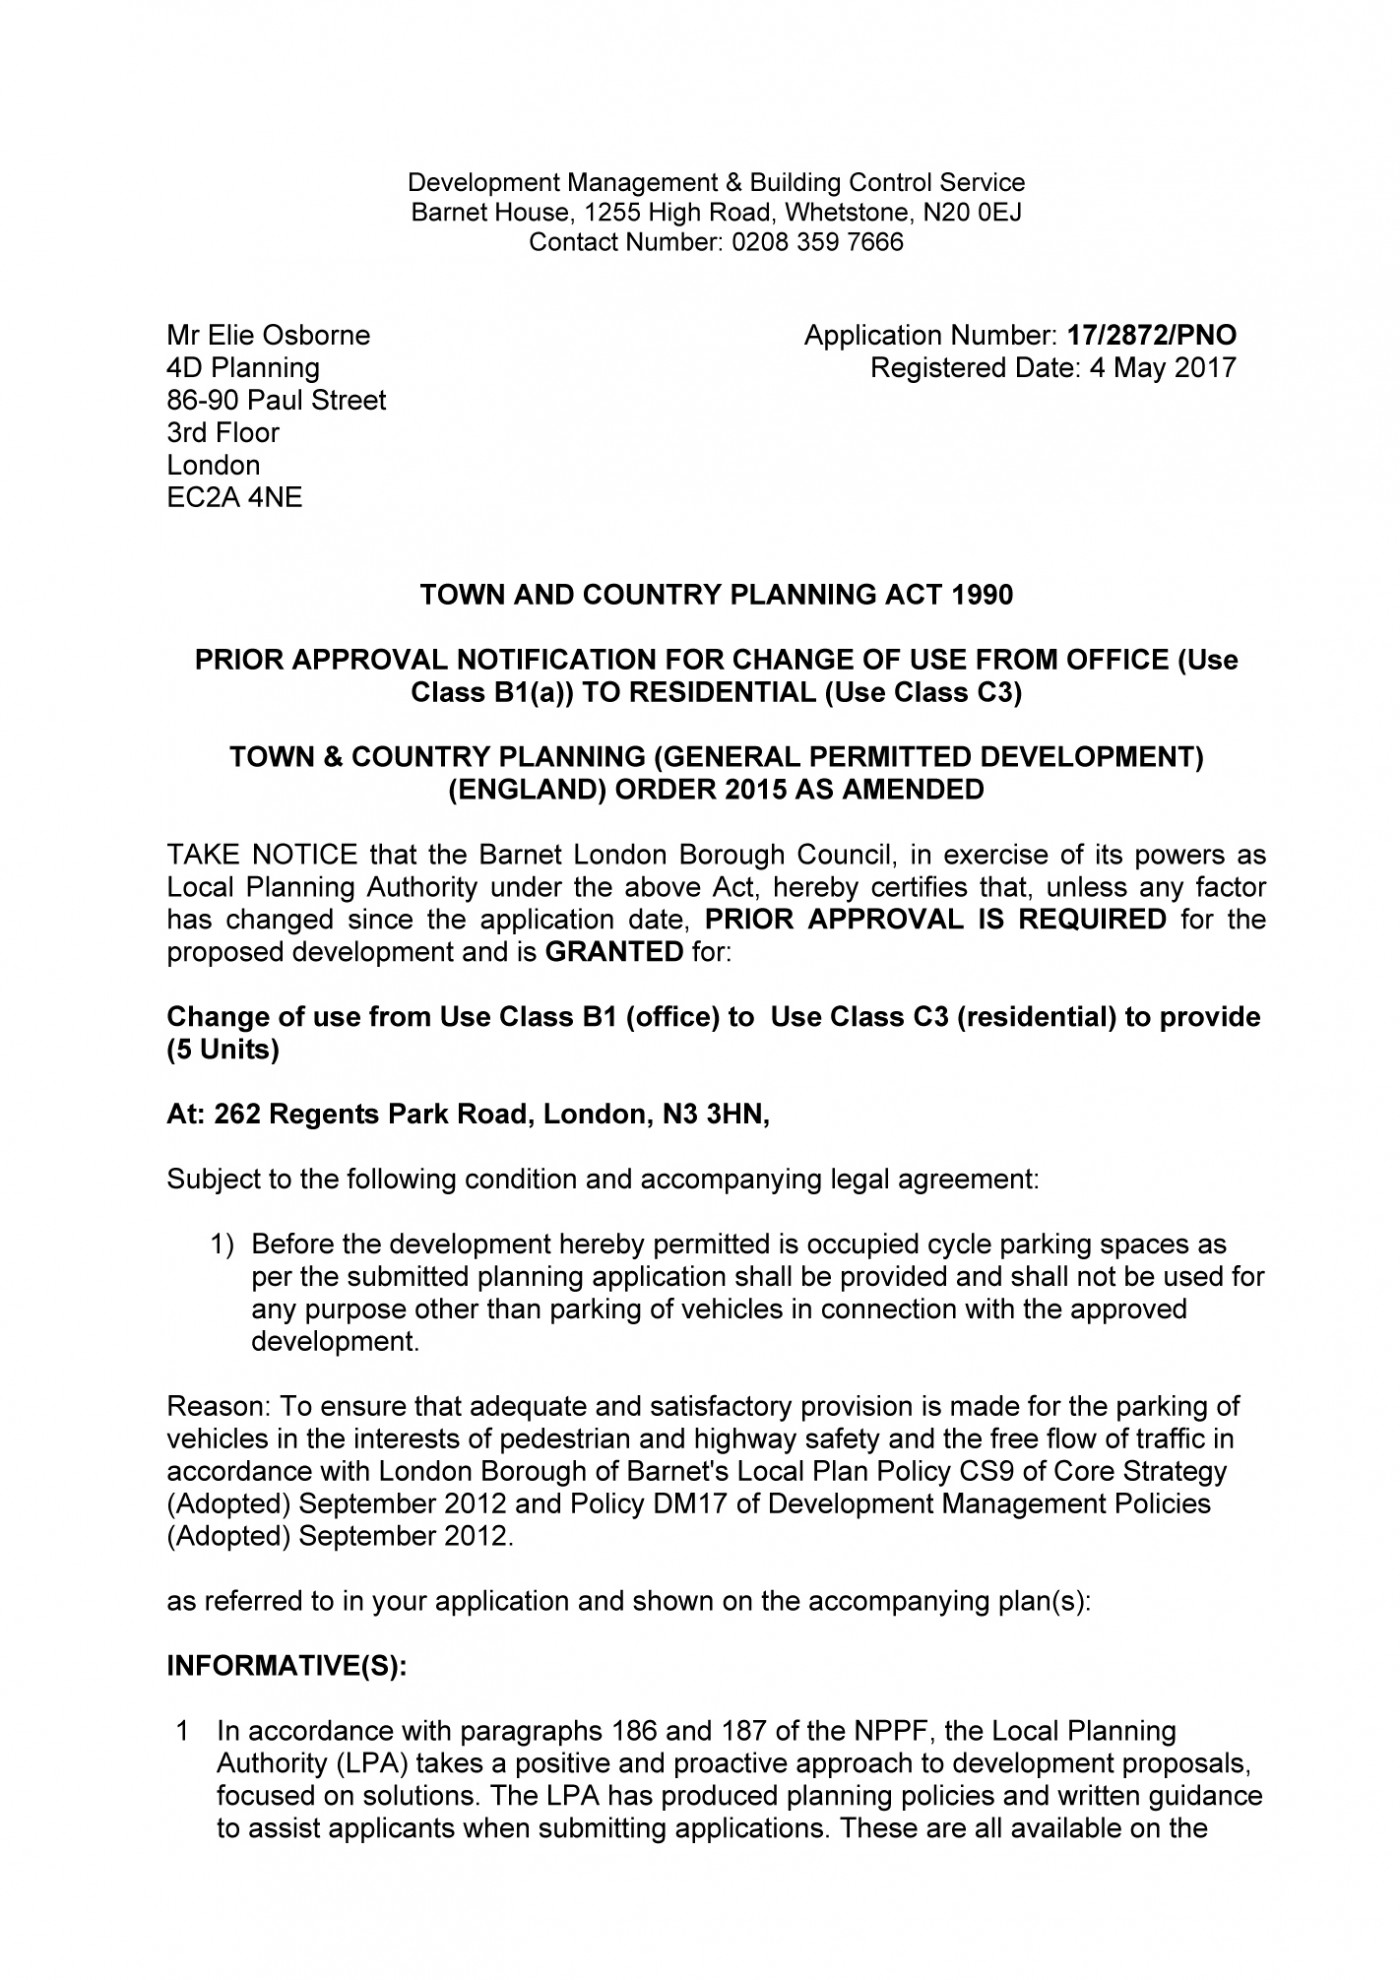 decision notice - Barnet Council - Change of use B1 to C3